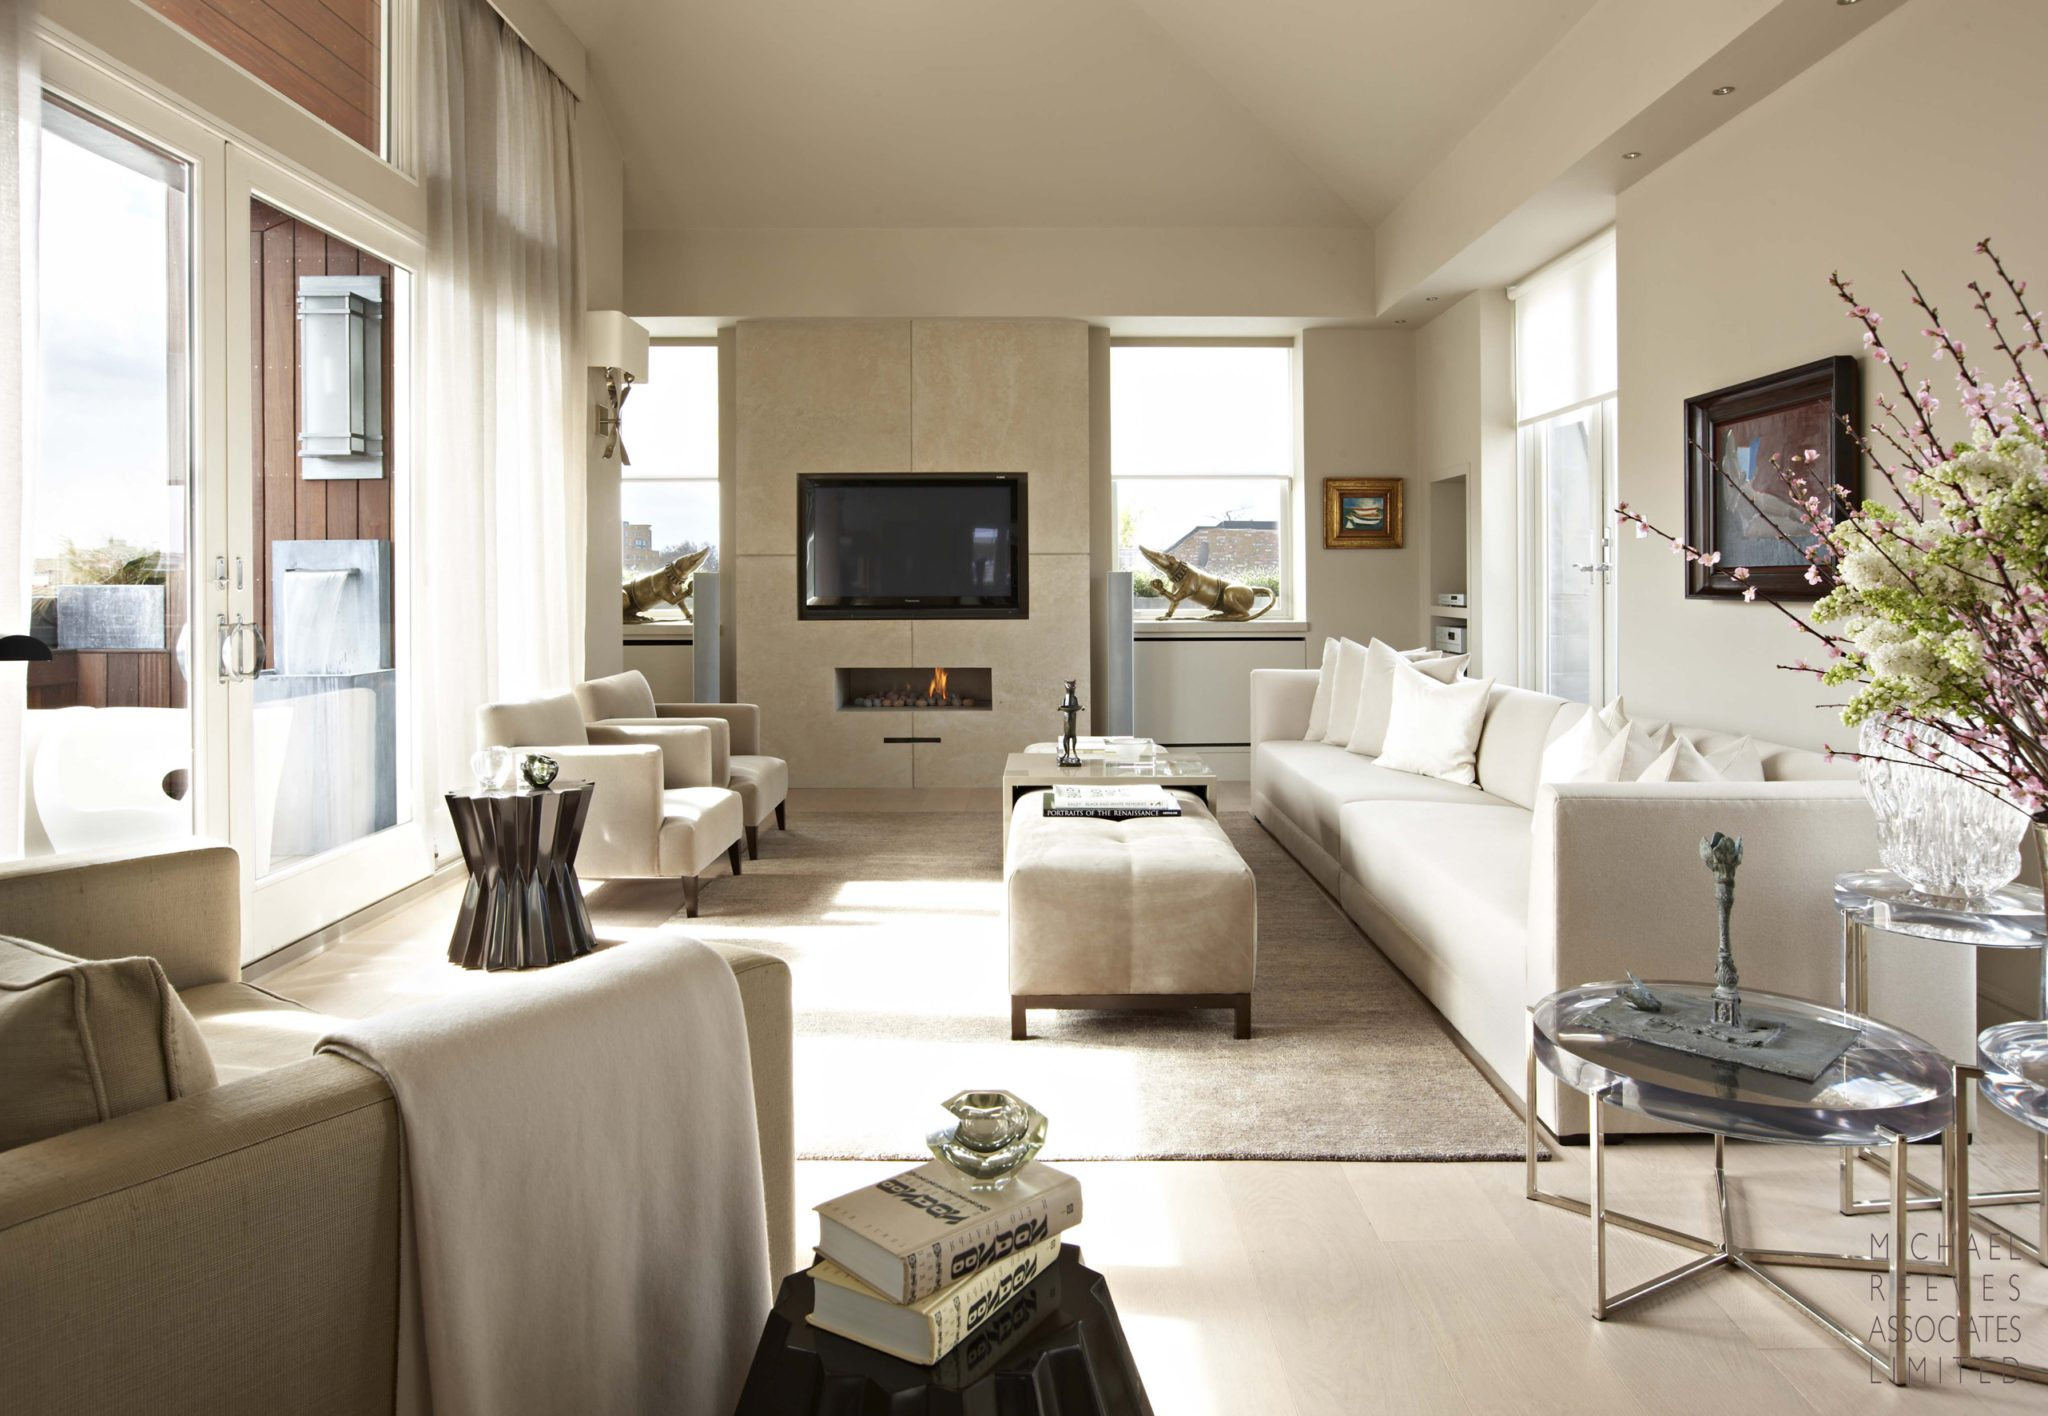 Interior design by Michael Reeves Associates